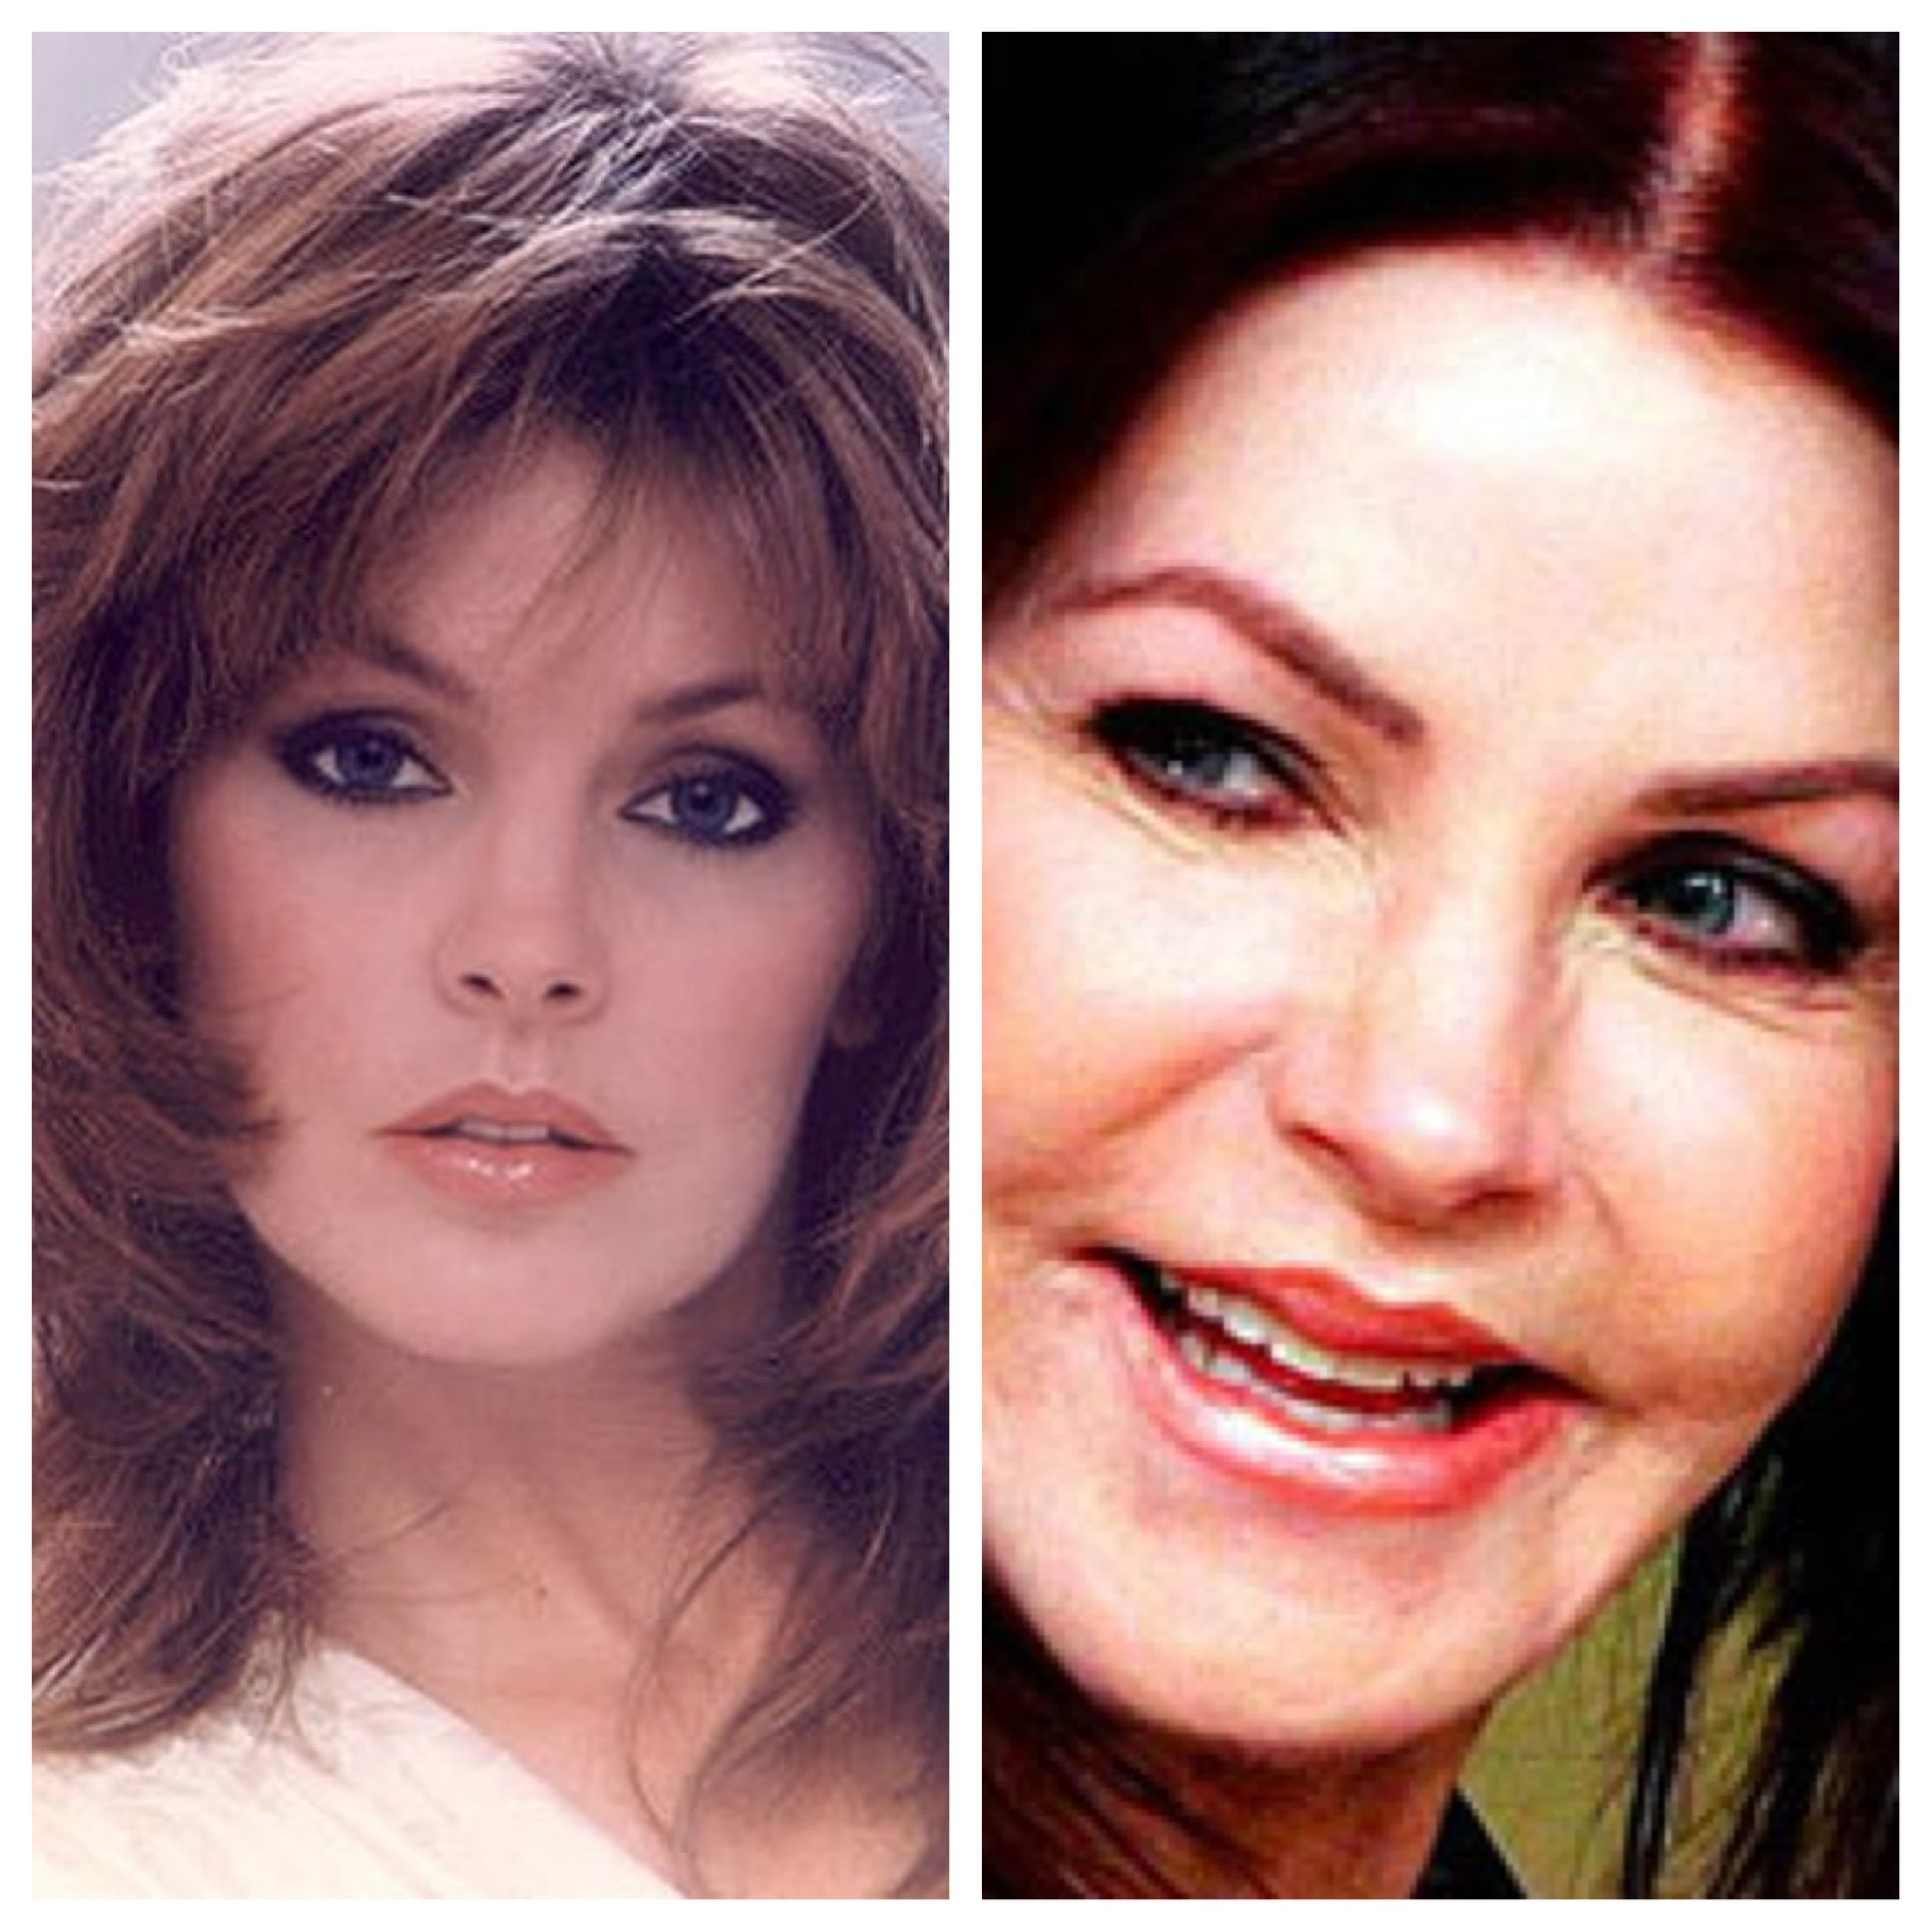 priscilla presley plastic surgery! elvis wouldn't recognize her